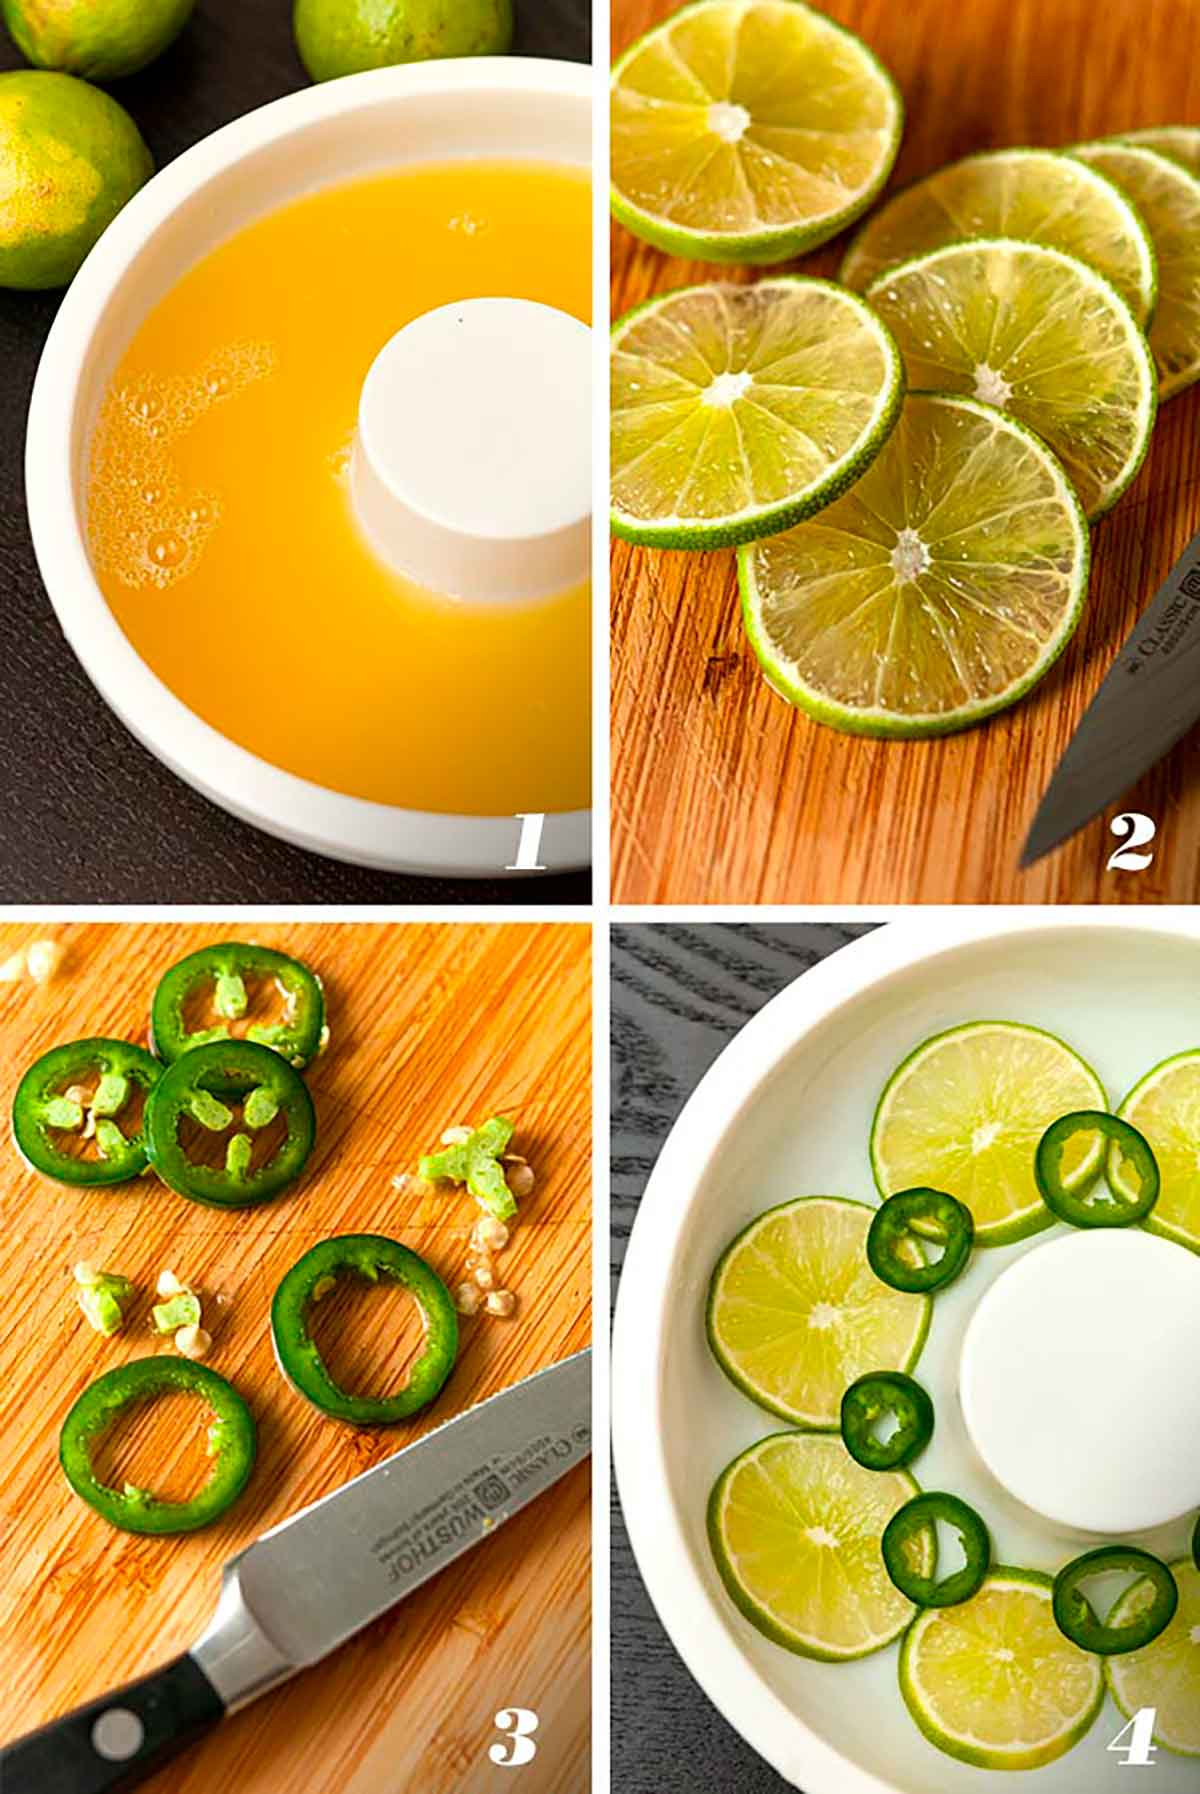 A collage of 4 numbered images showing how to make a pineapple juice ice ring with limes and jalapeños.